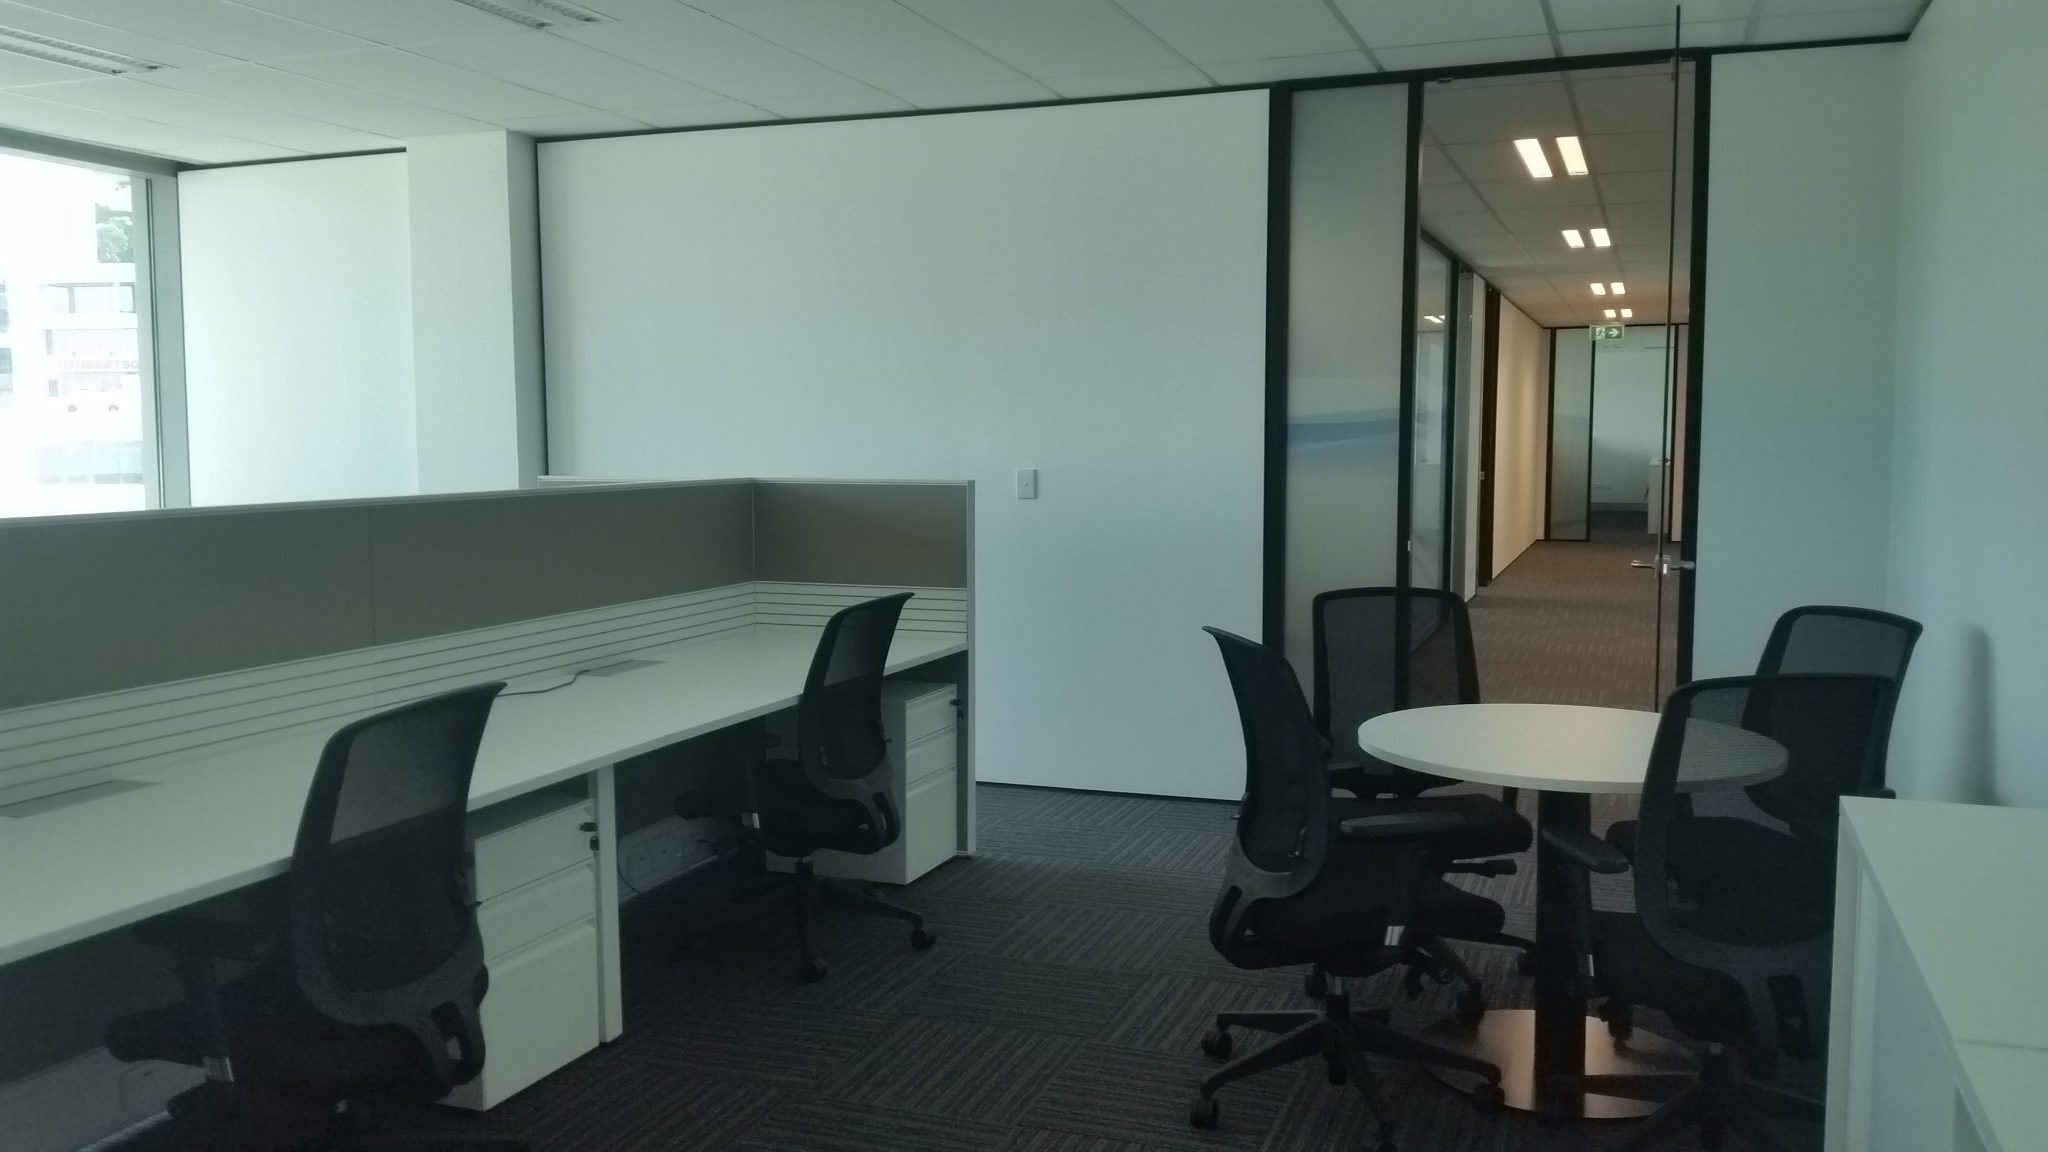 6 Person Fully Equipped Office for Short/Long Term Lease - Available Immediately!